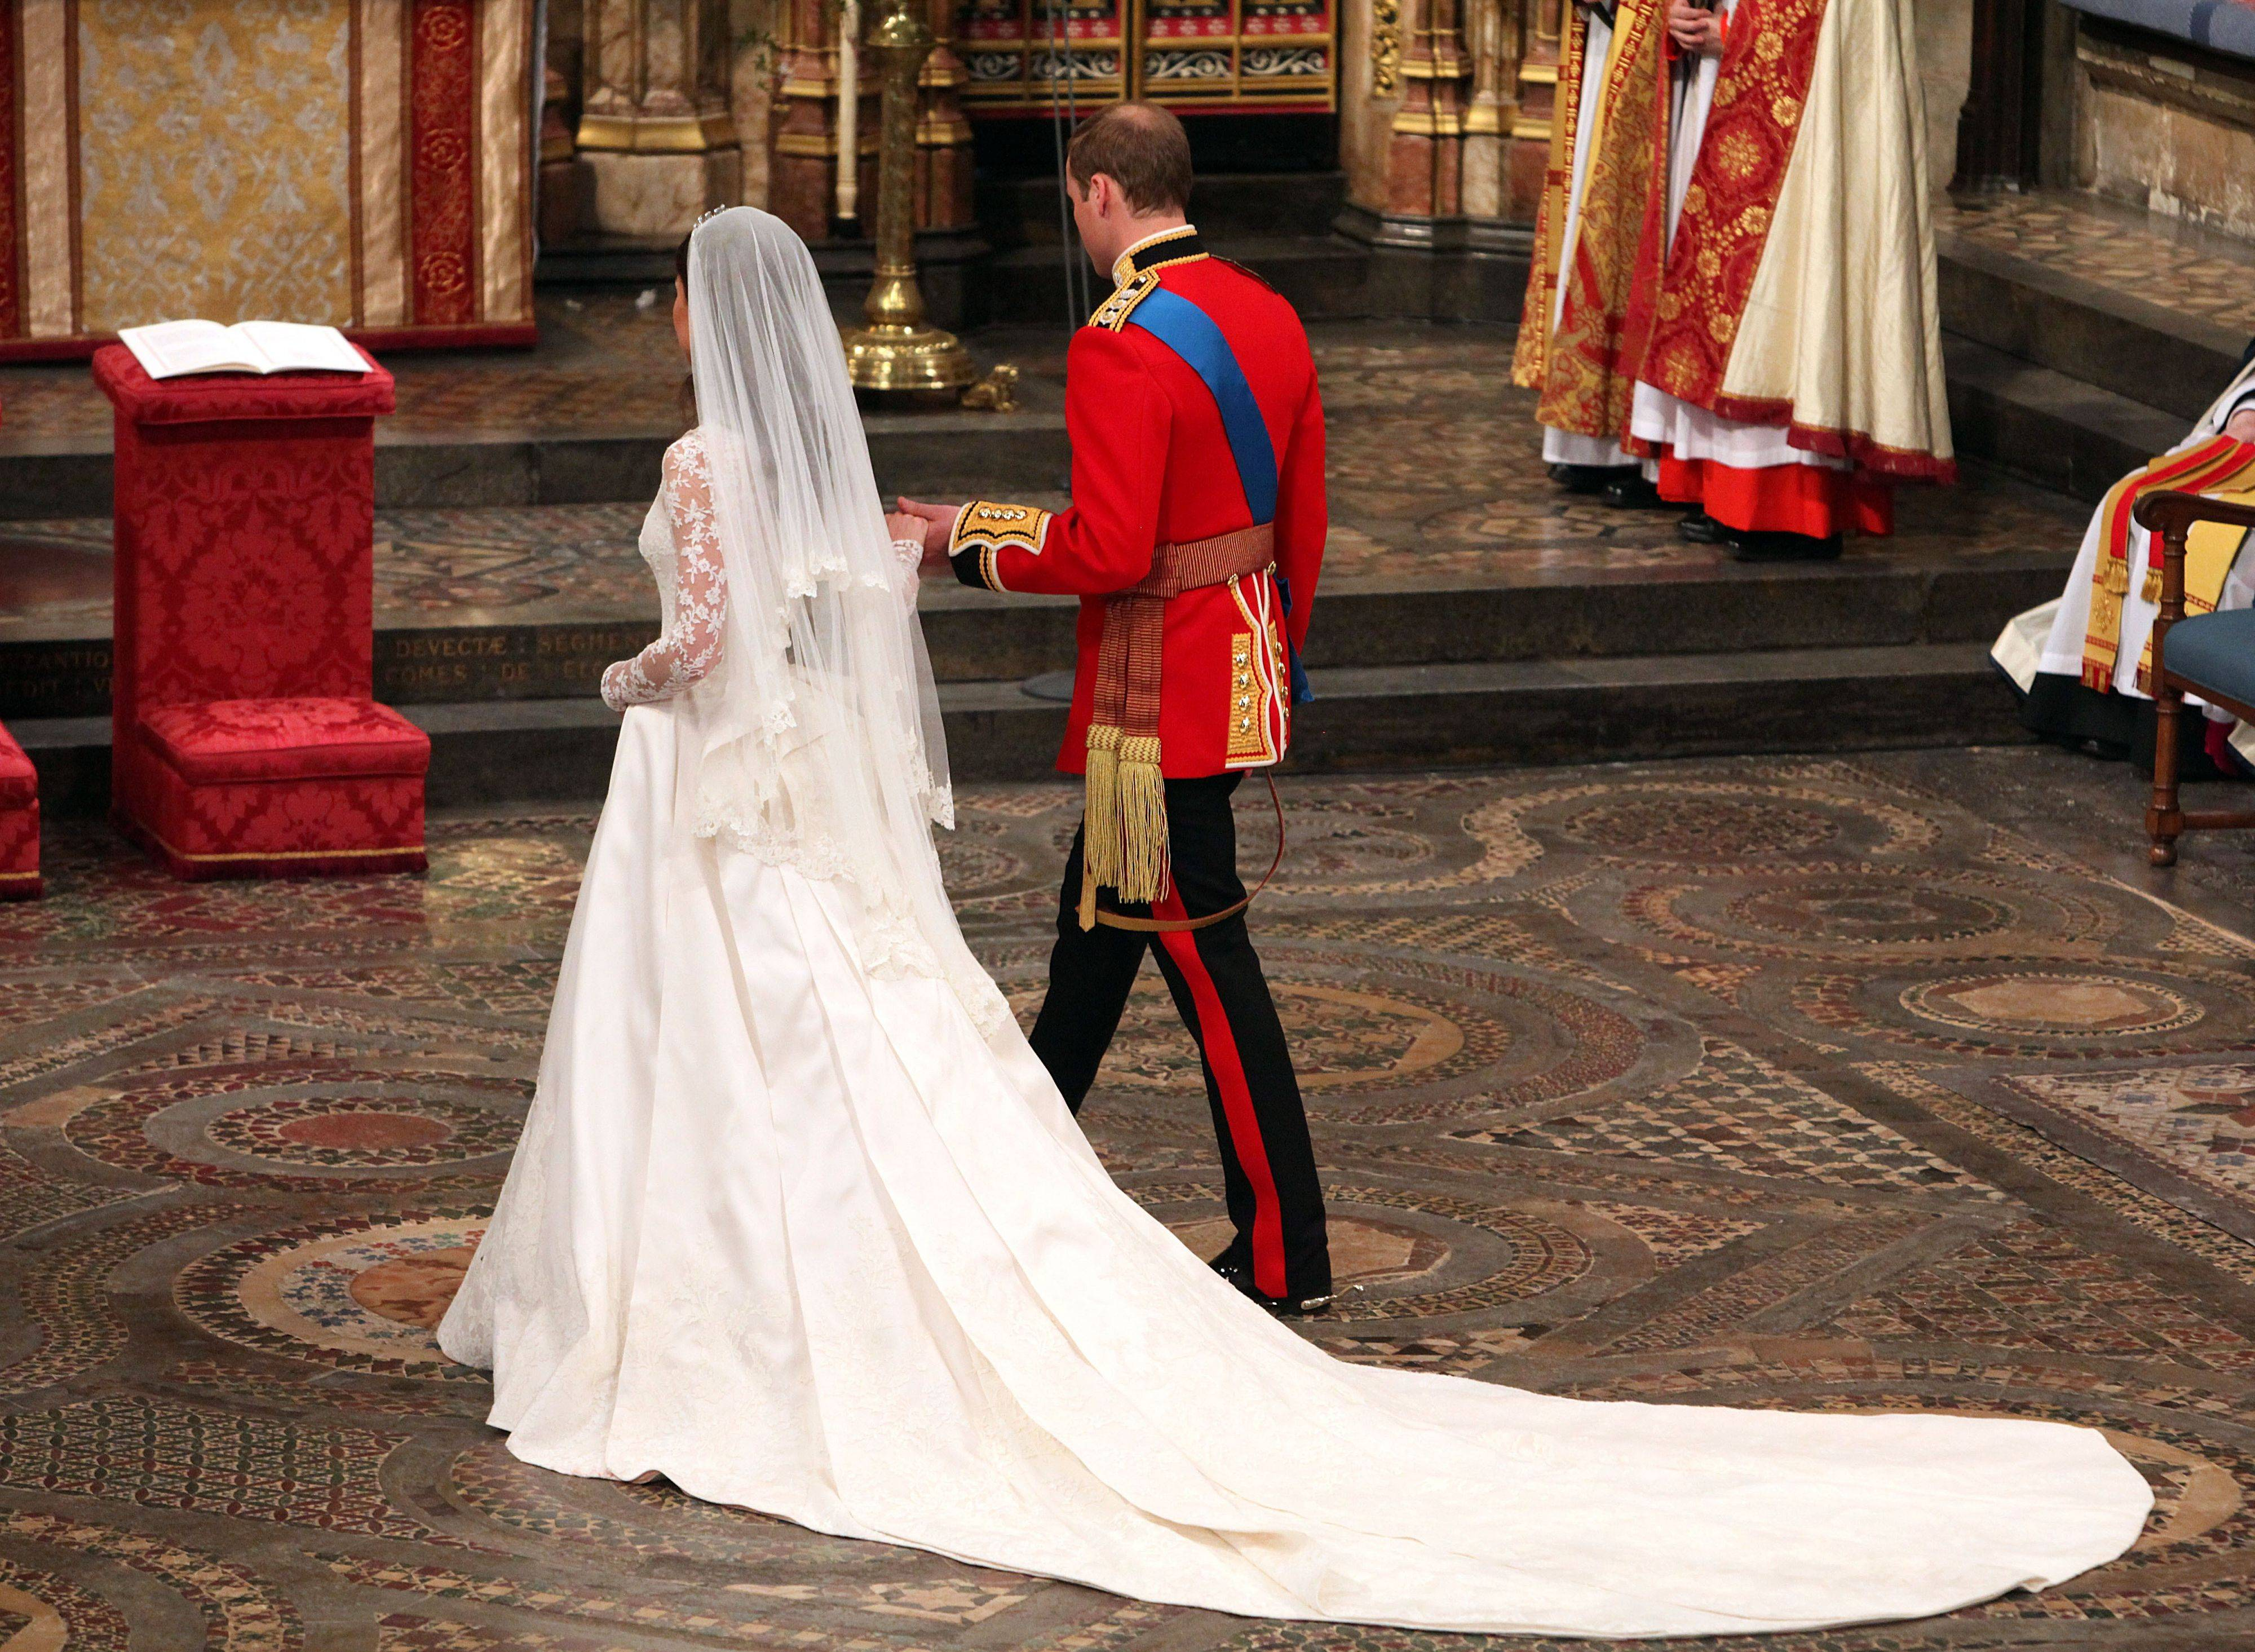 Kate, the Duchess of Cambridge, and Britain's Prince William walk hand in hand after their wedding service at Westminster Abbey, London, Friday April 29, 2011.